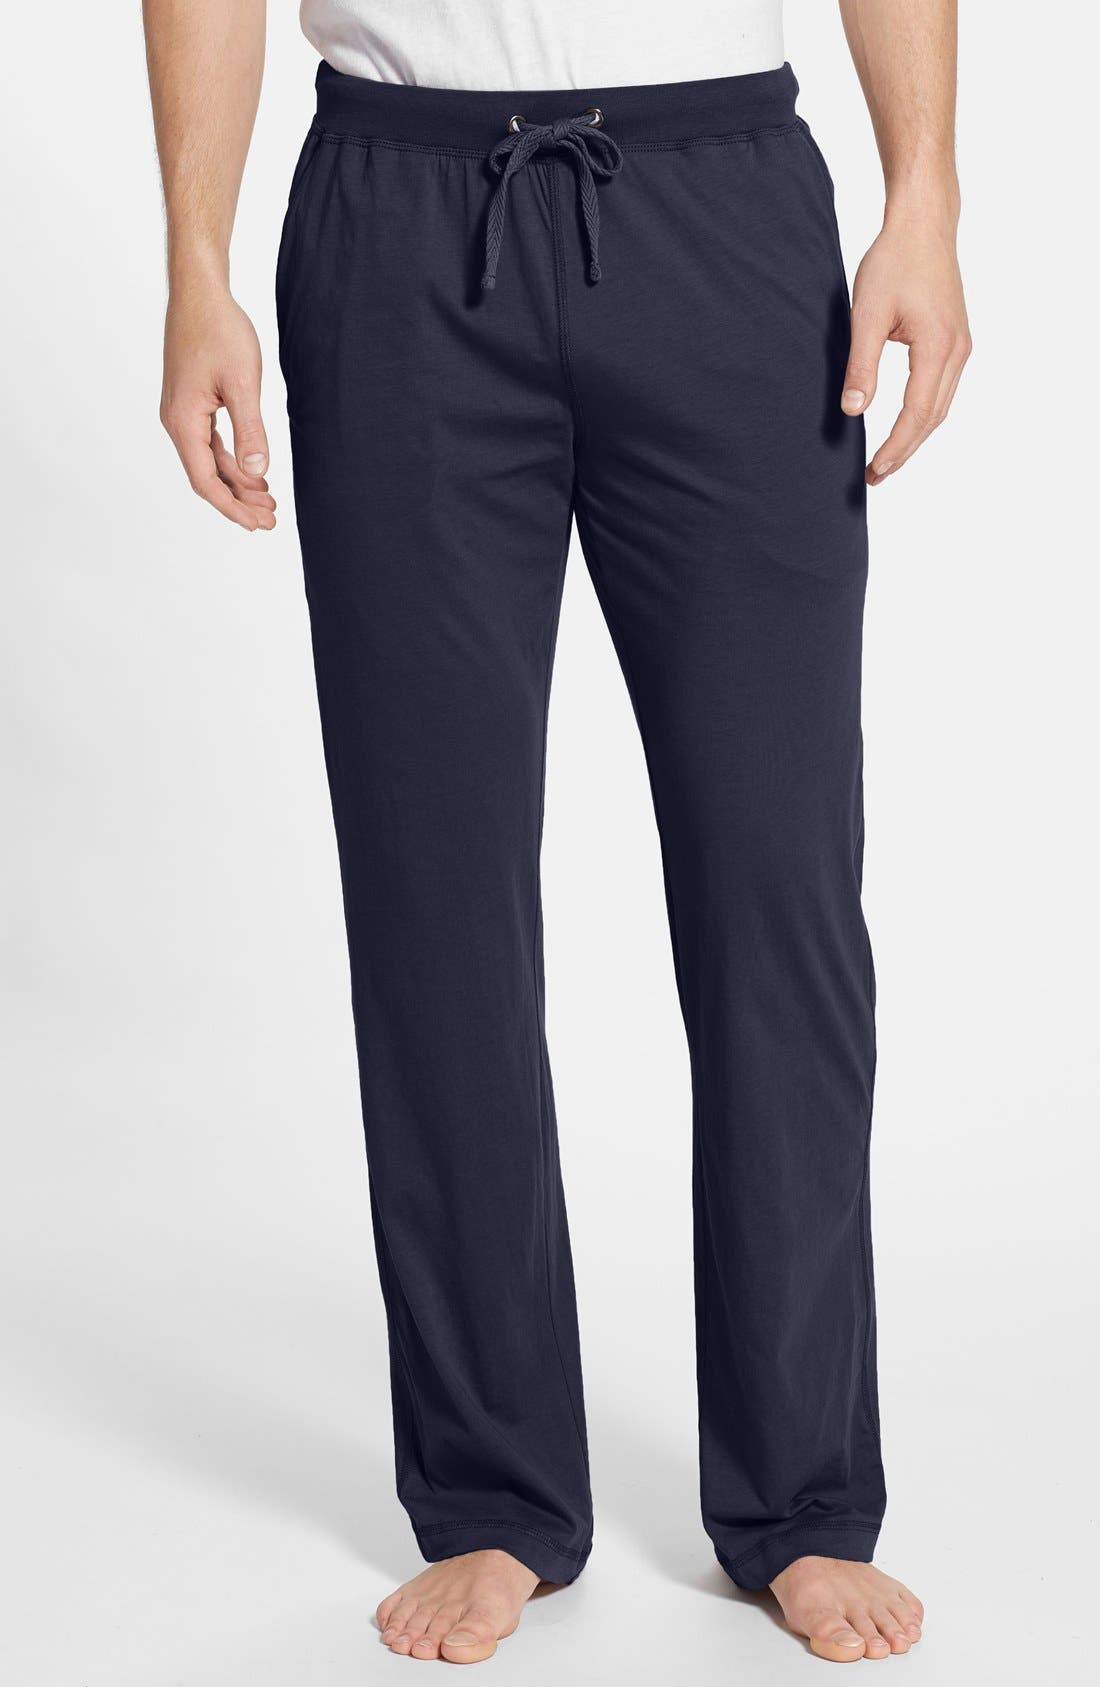 Alternate Image 1 Selected - Daniel Buchler Peruvian Pima Lightweight Cotton Lounge Pants